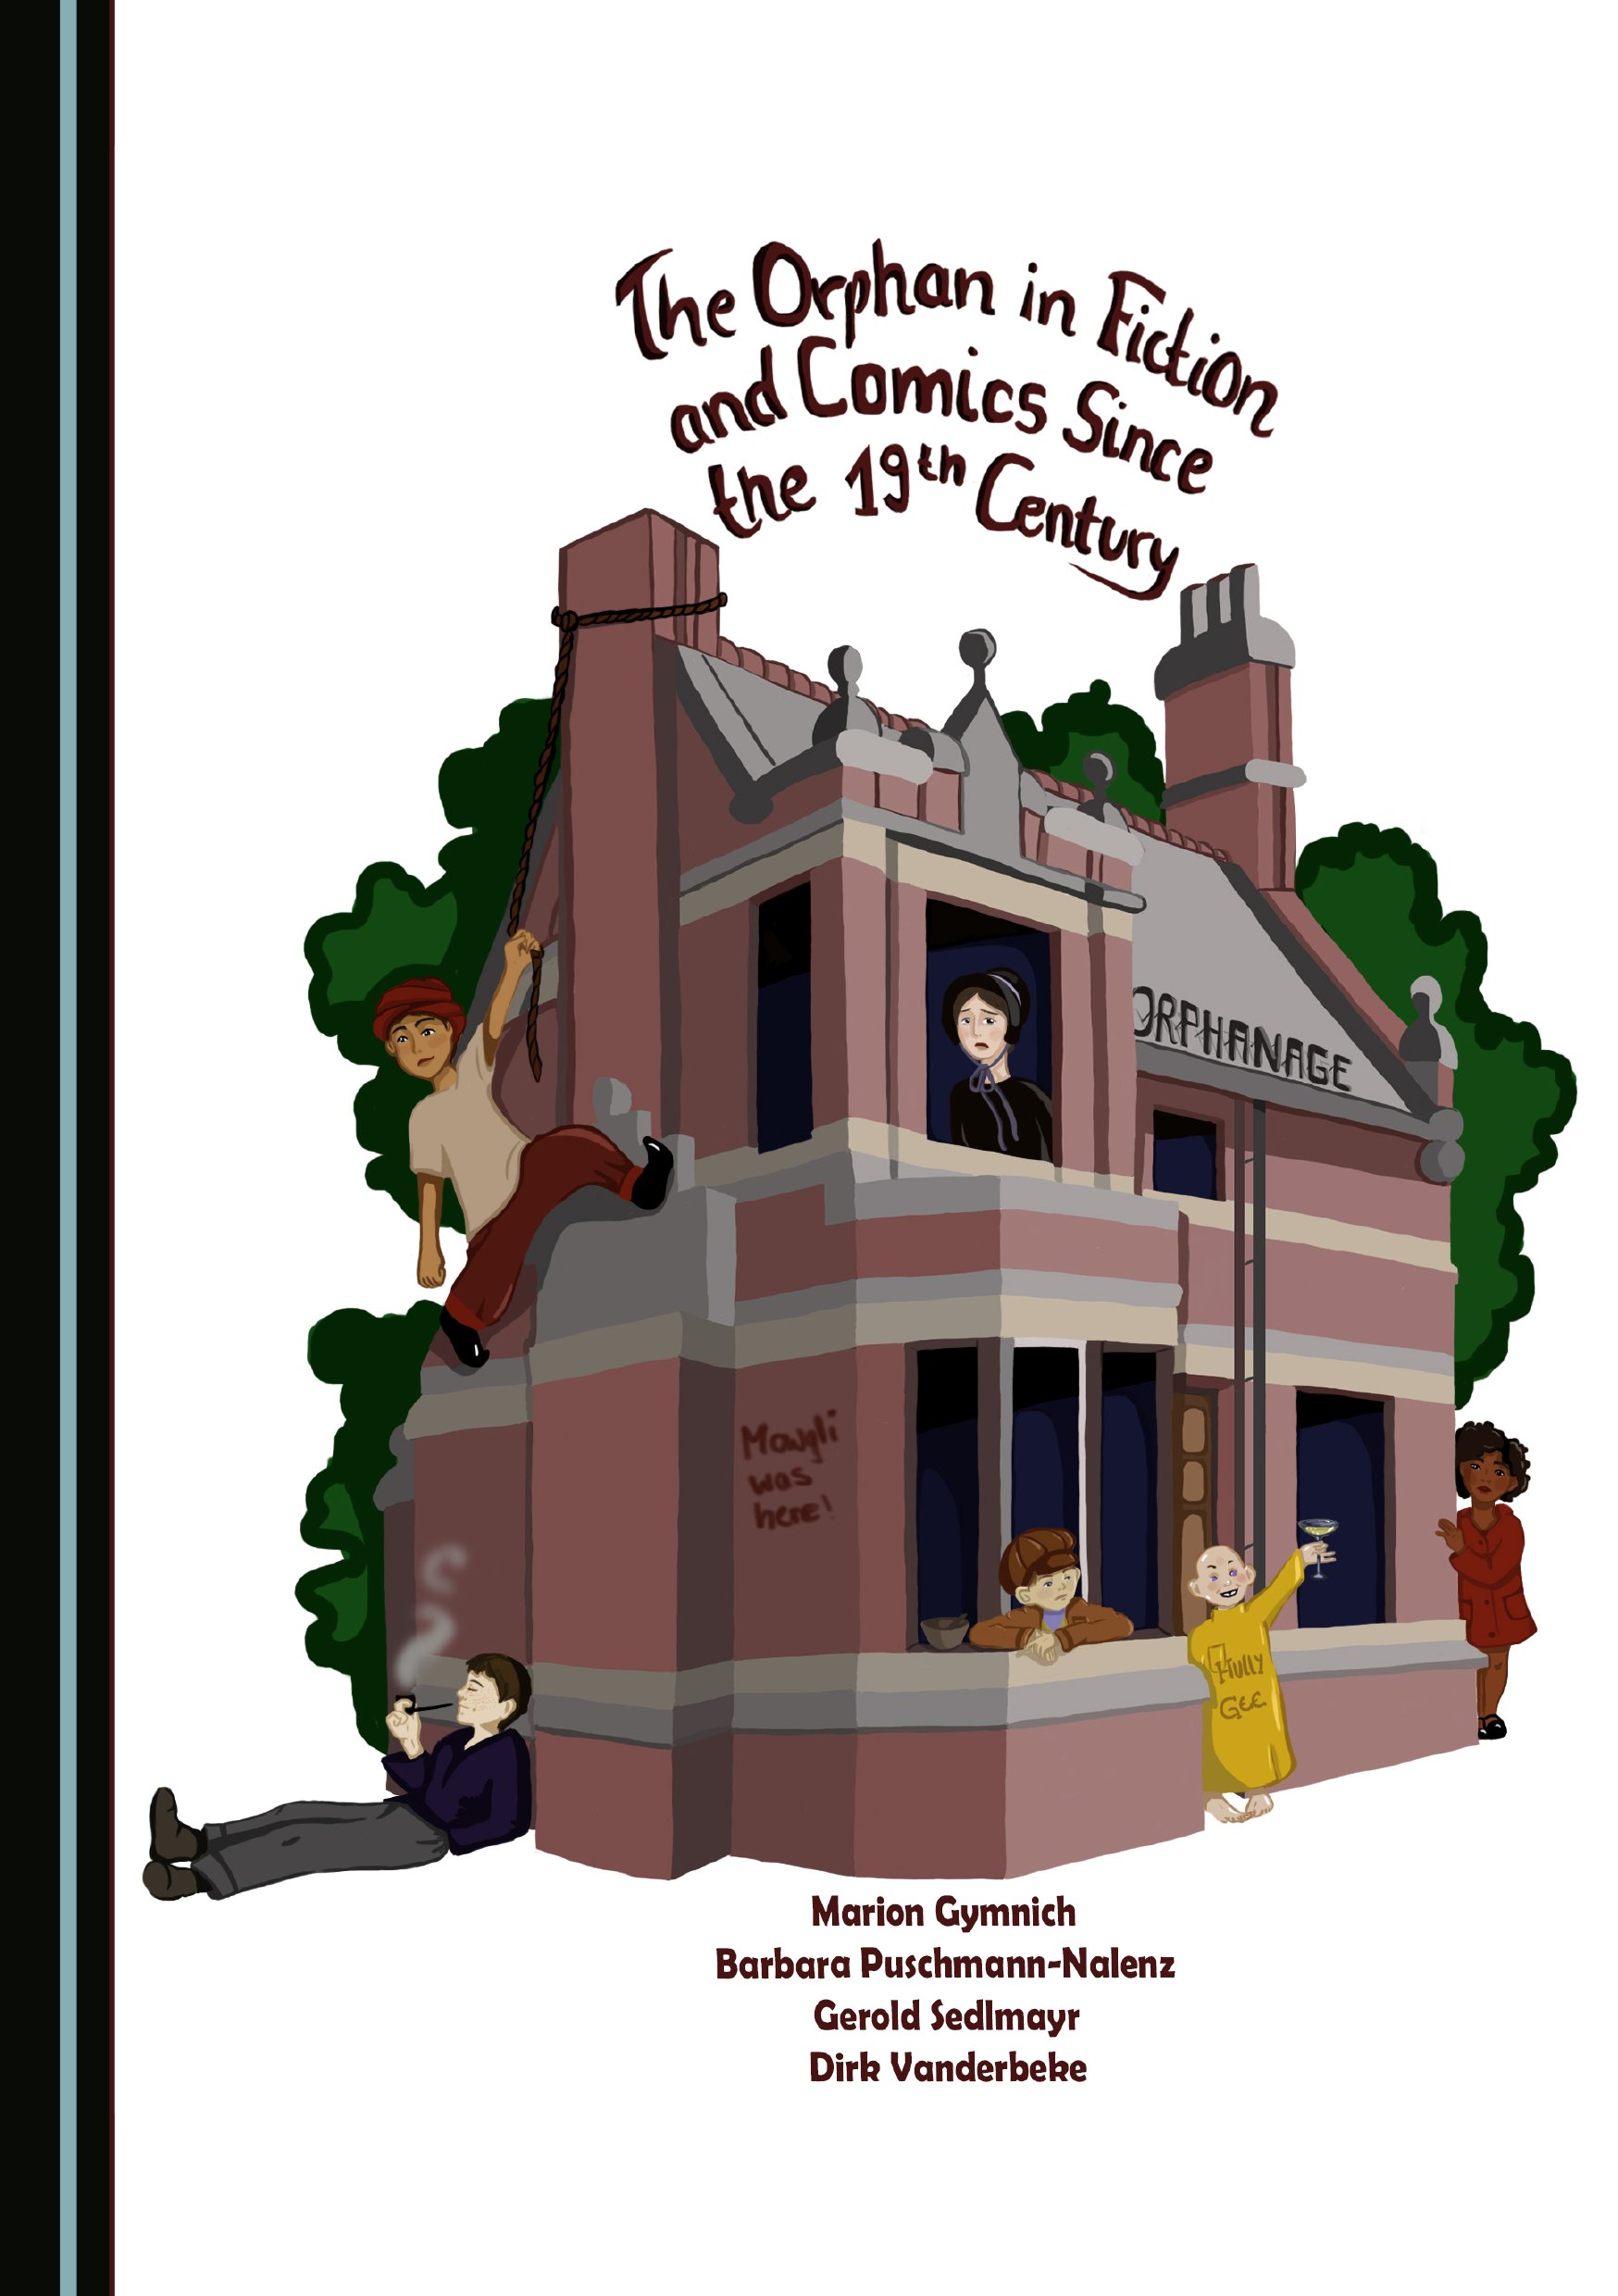 The Orphan in Fiction and Comics since the 19th Century